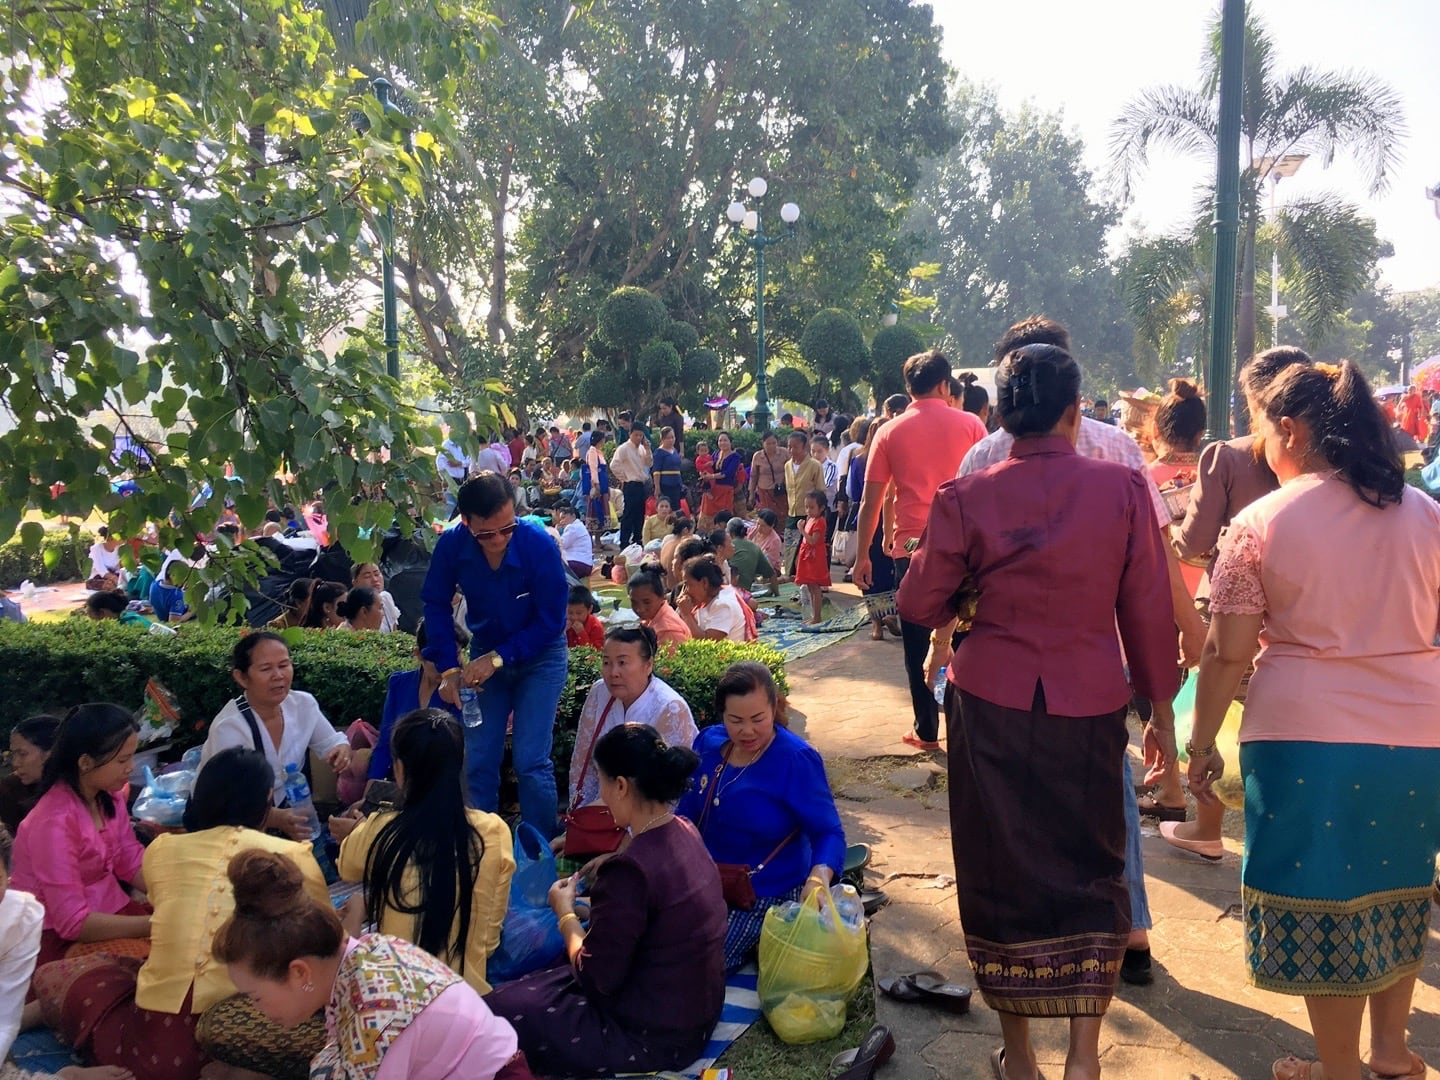 families gathered for a picnic in Vientiane Laos